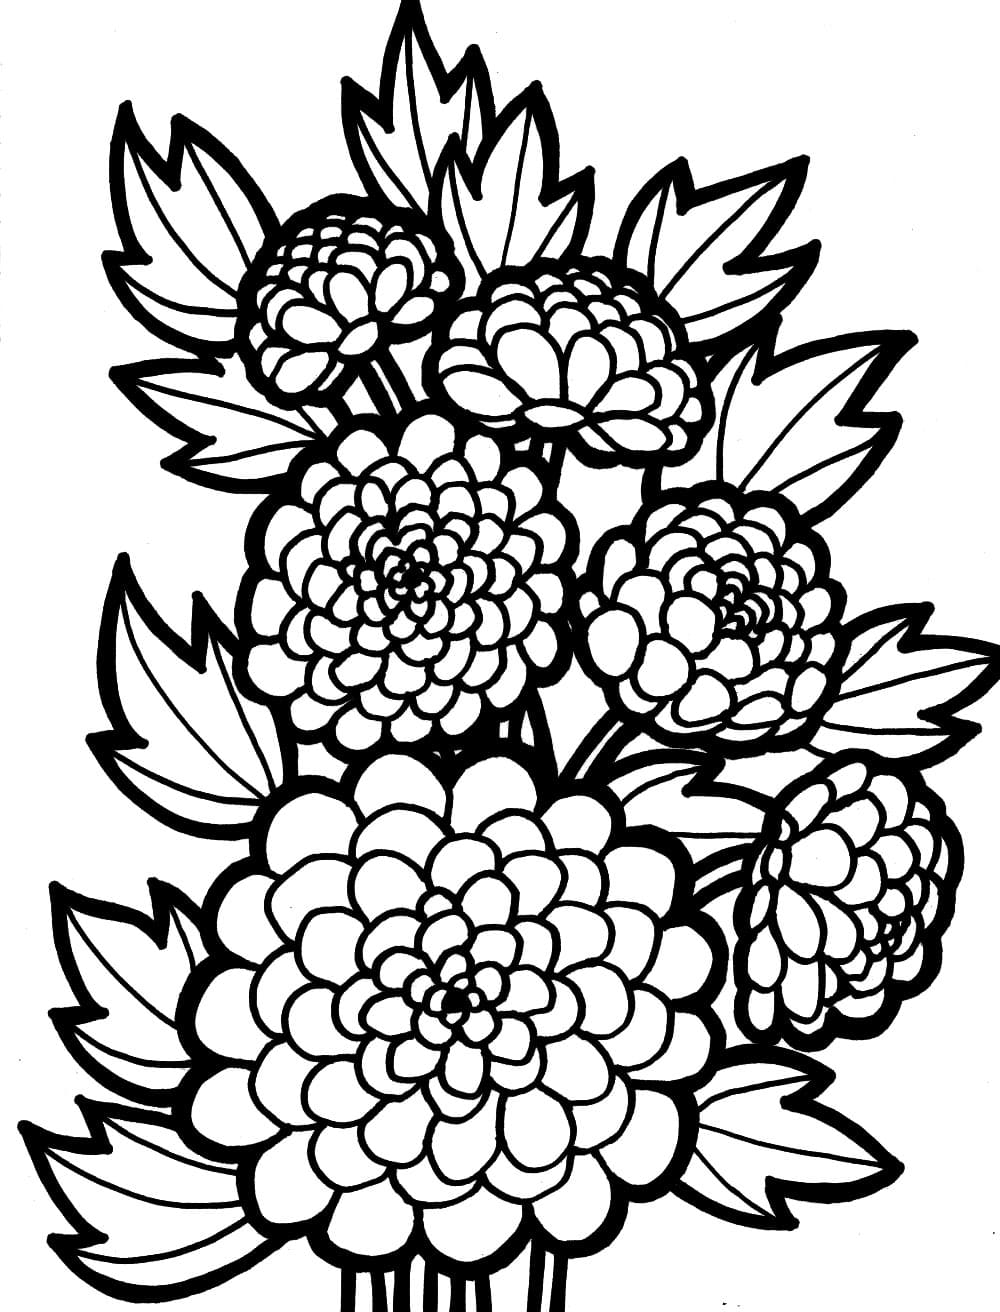 Free Intricate Flower Coloring Pages, Download Free Clip Art, Free ... | 1312x1000